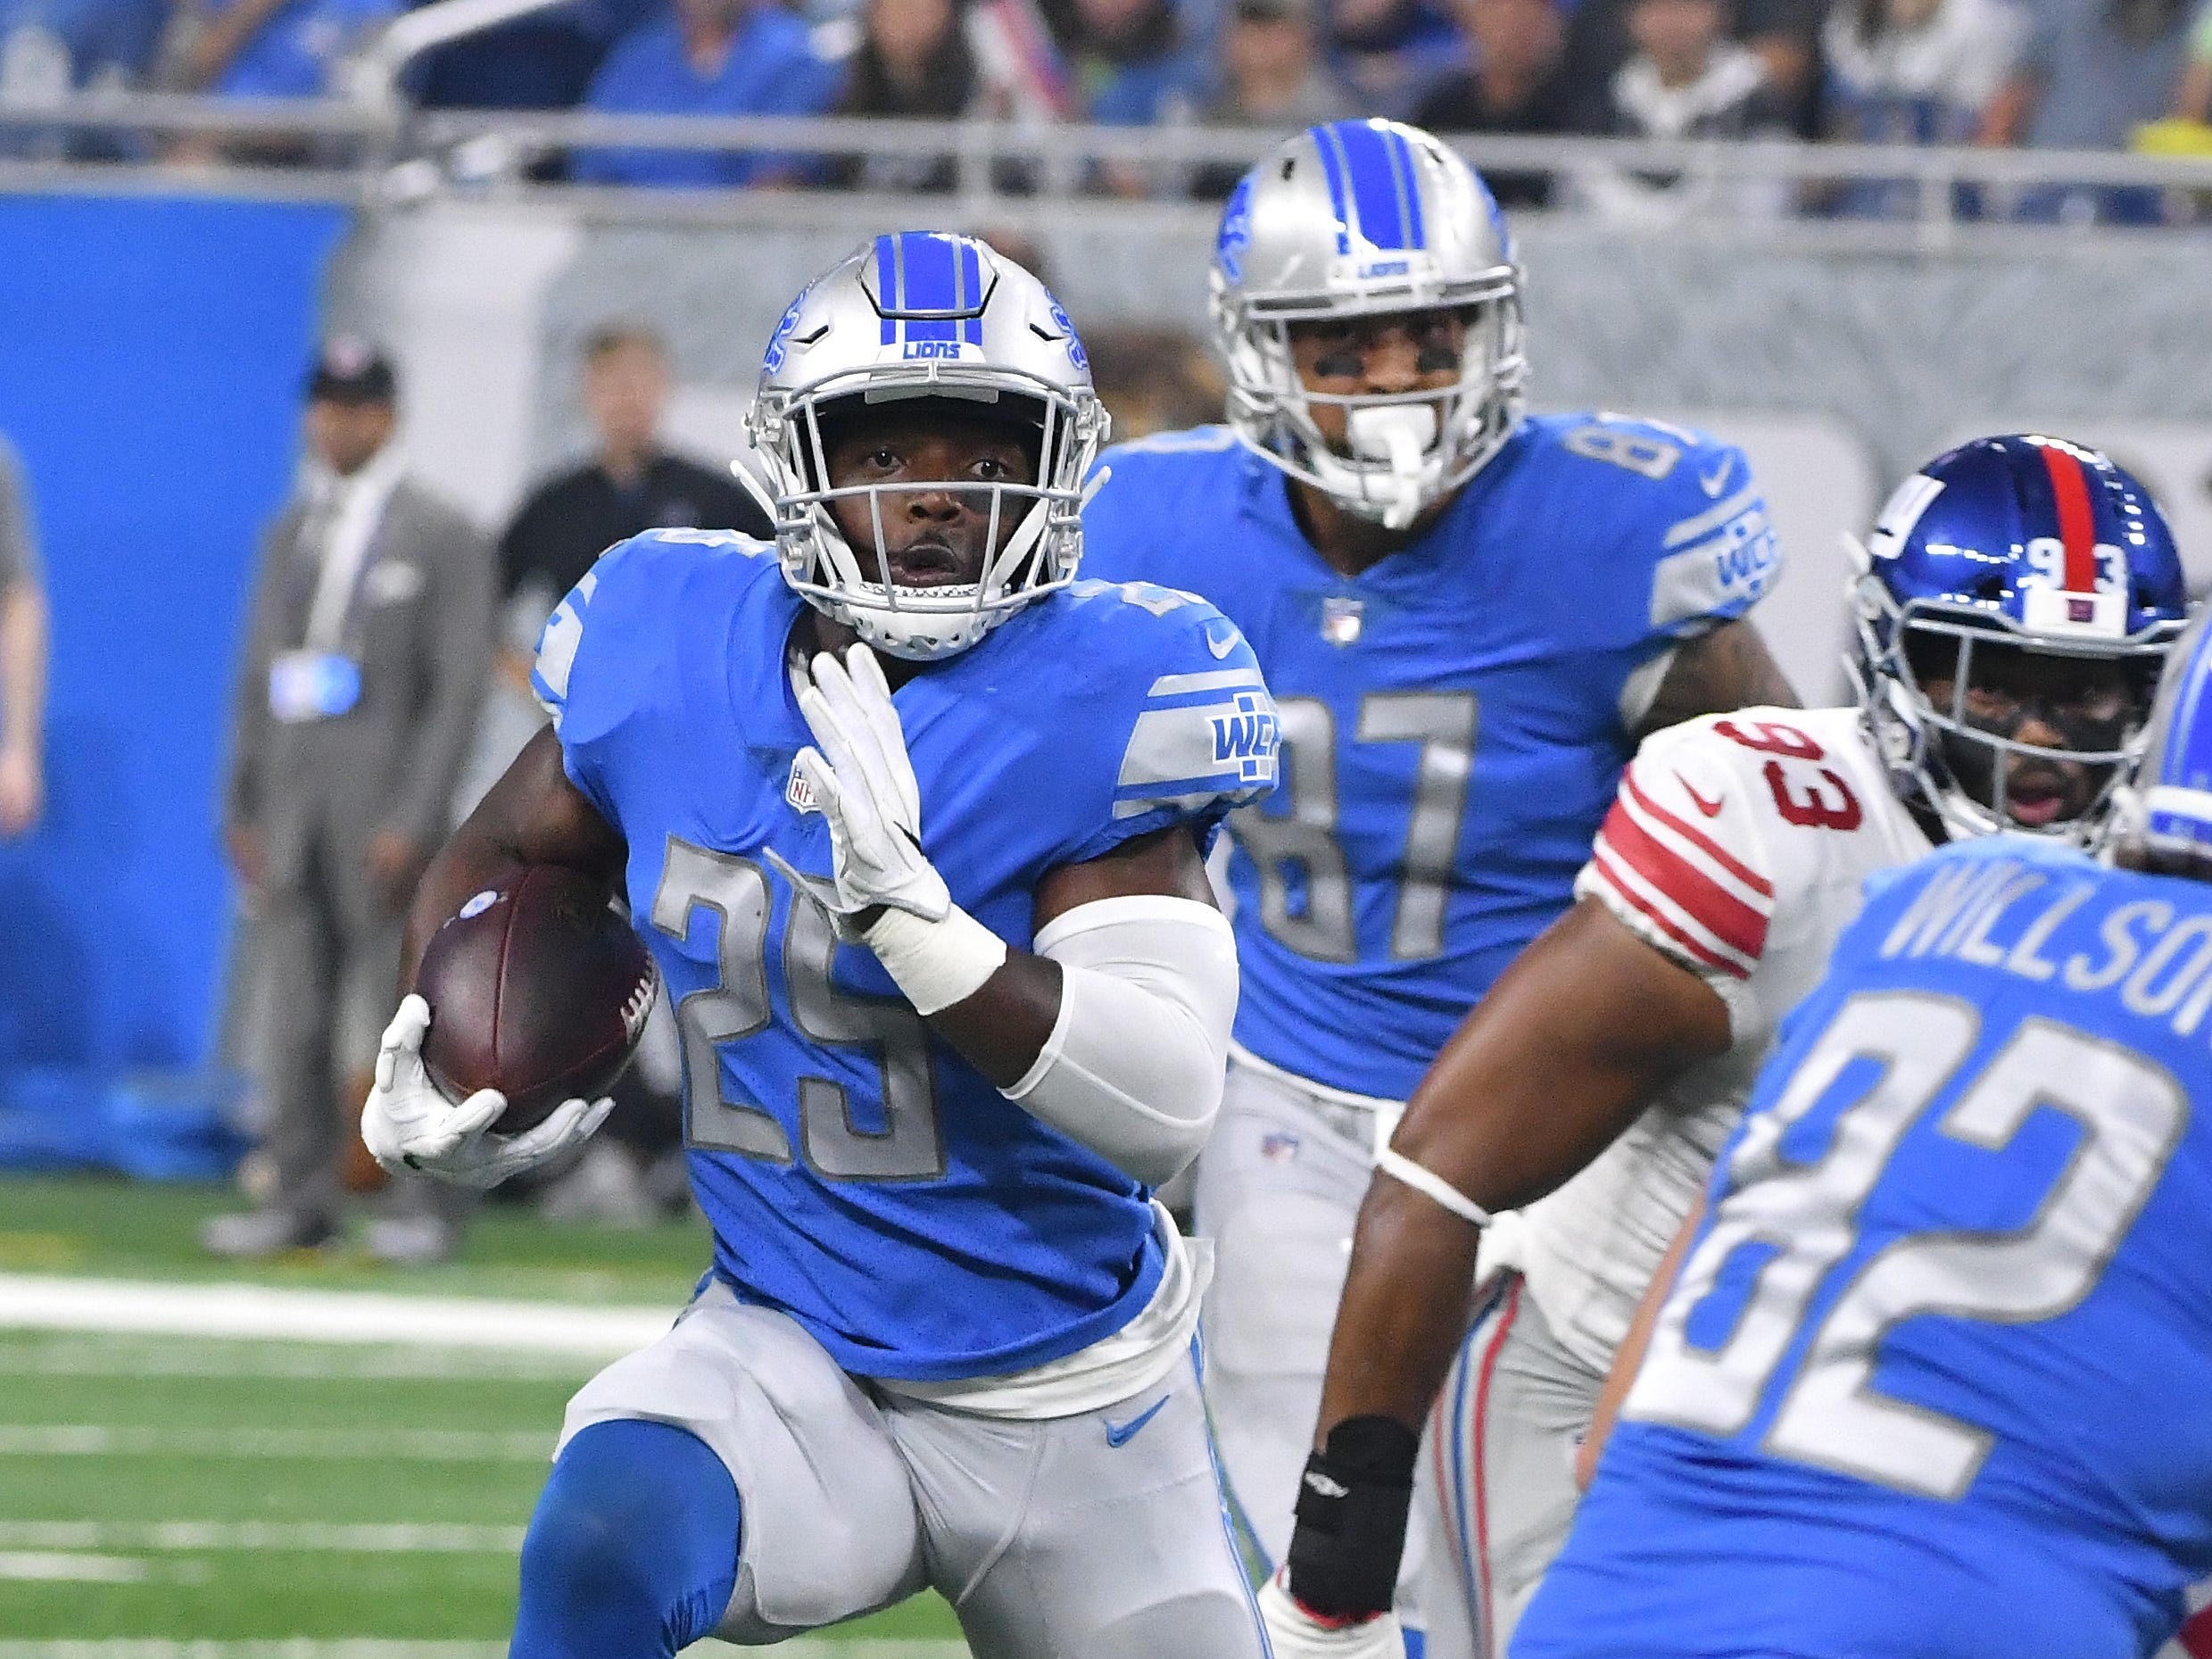 Lions running back Theo Riddick gets an reception in open space, running down field for a long first down in the first quarter.